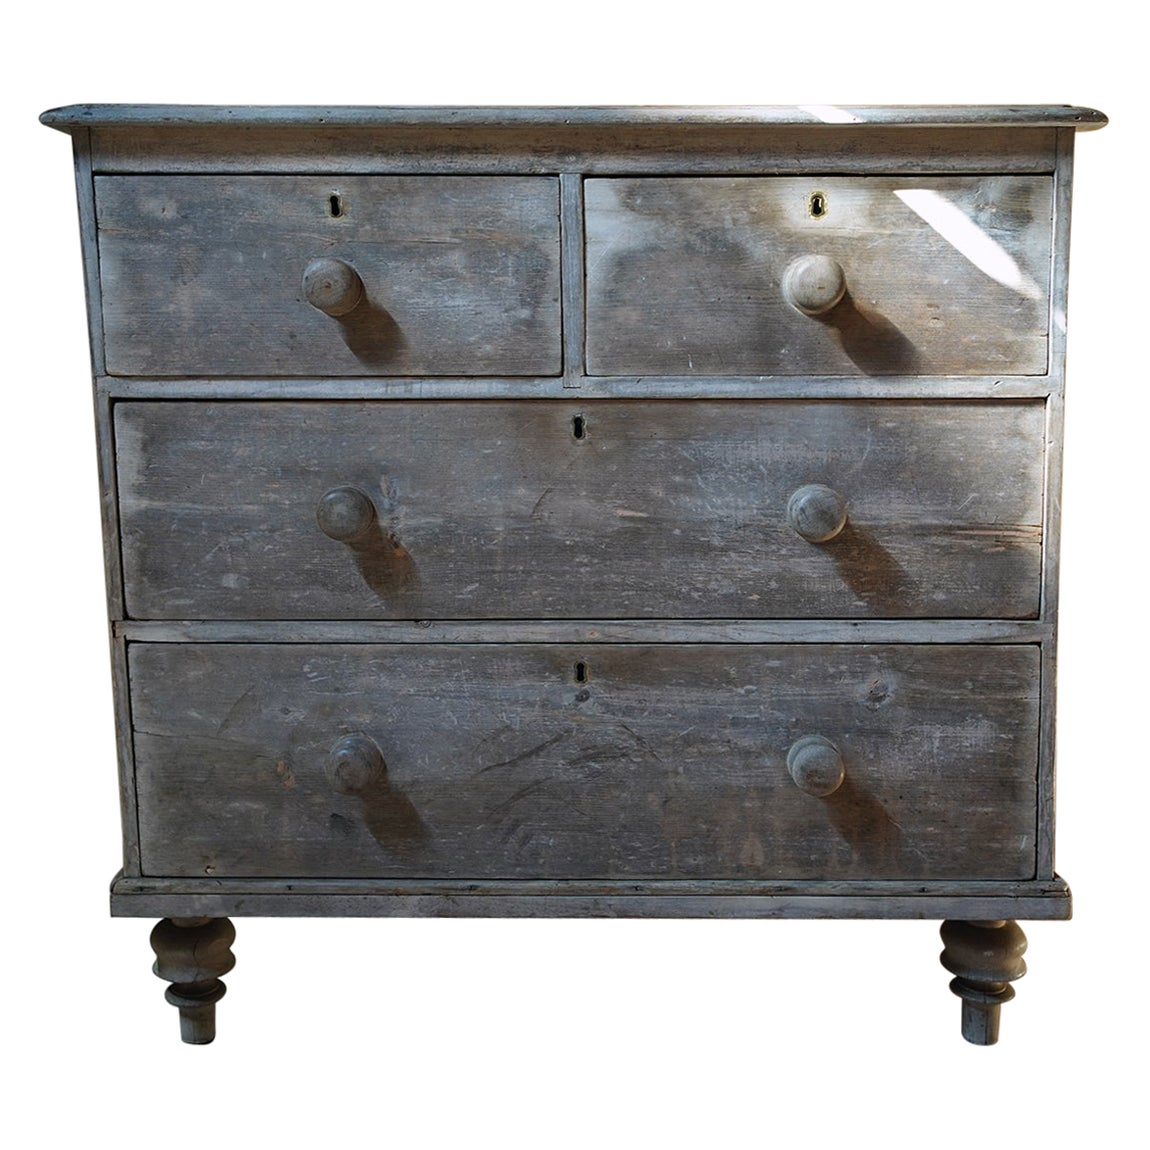 Late 19thC Bleached Pine Chest of Drawers, c.1900